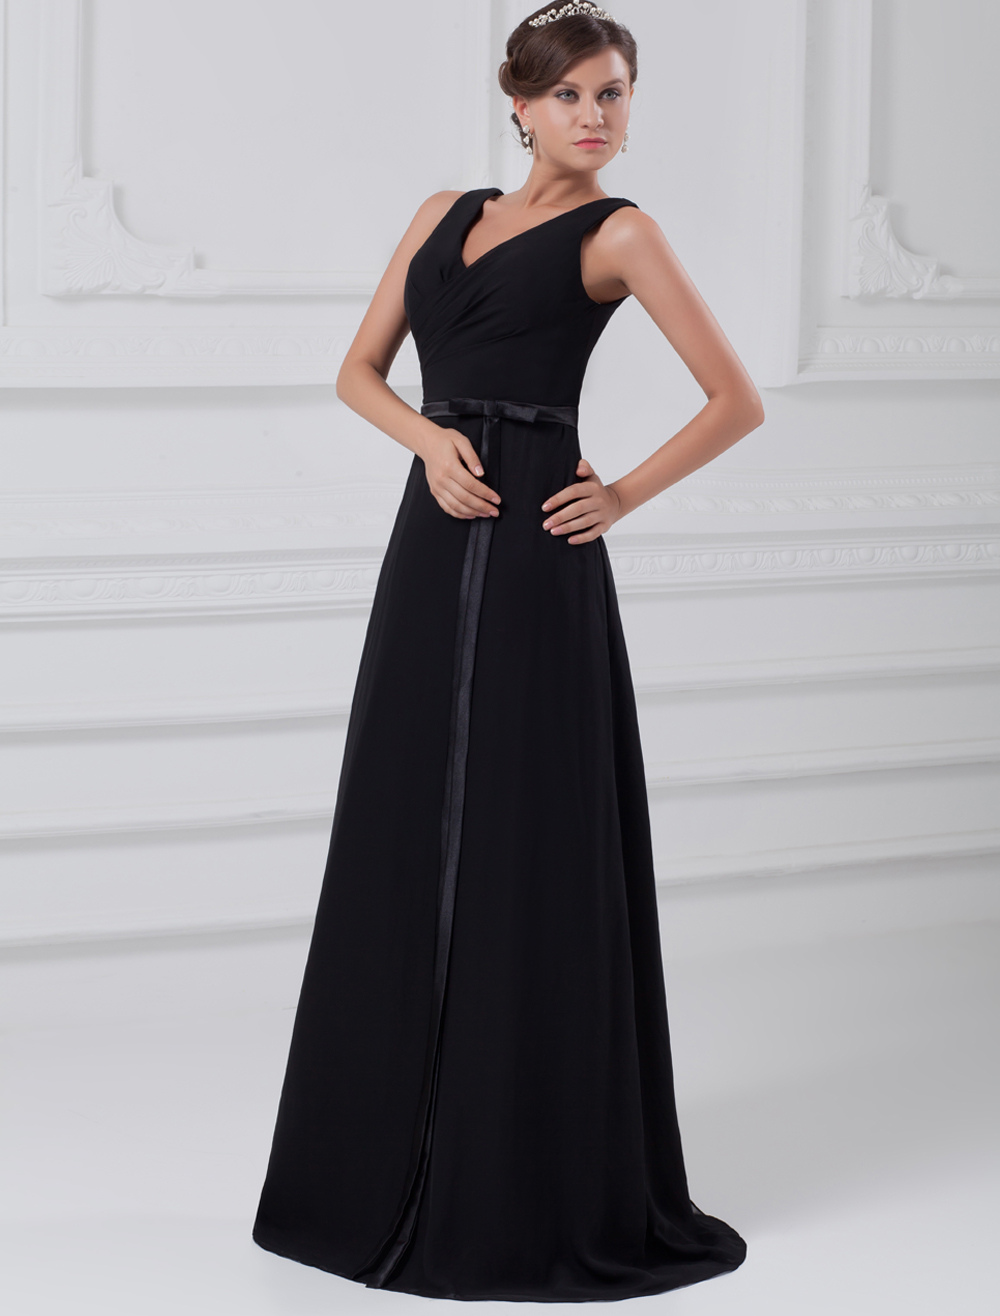 Buy Chic Black Chiffon Bow V-Neck Women's Evening Dress for $119.99 in Milanoo store